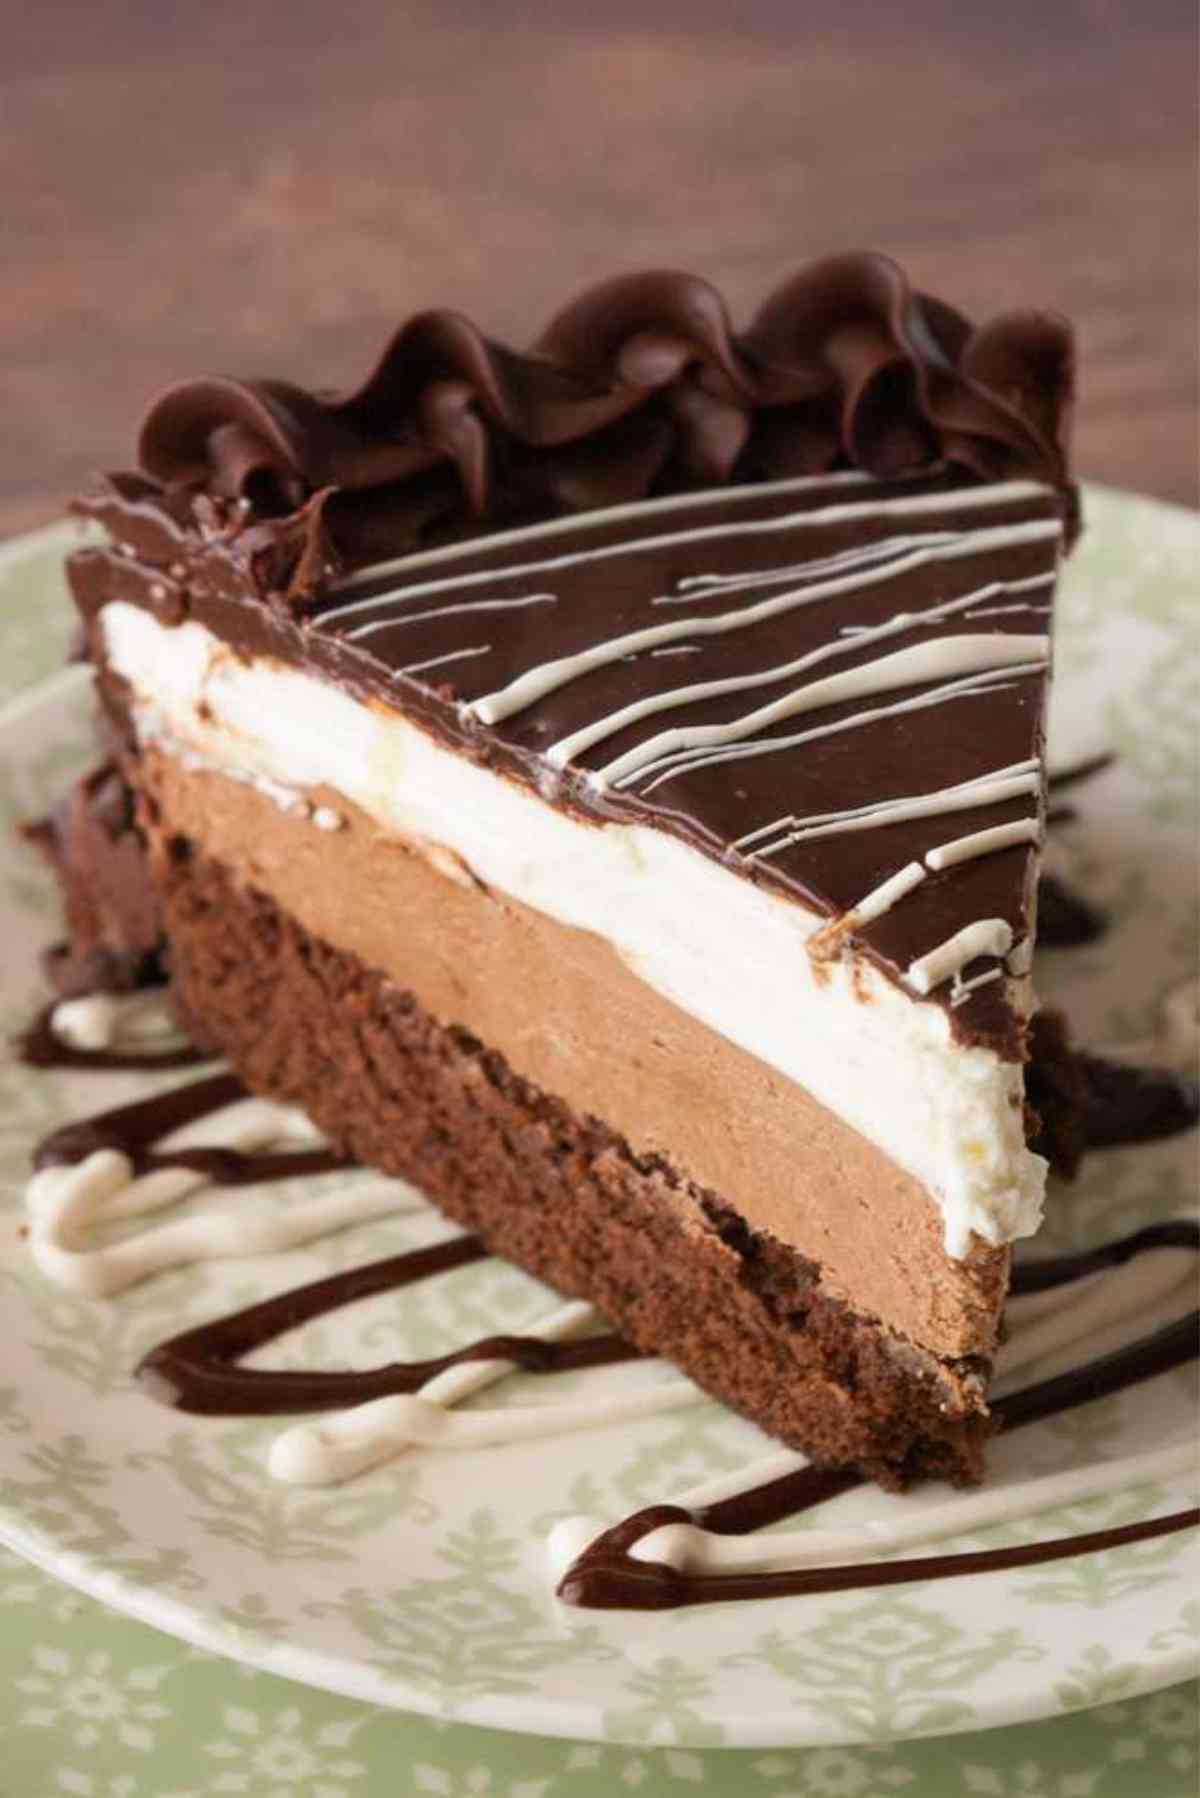 Black Tie Mousse Cake slice drizzled with white chocolate.